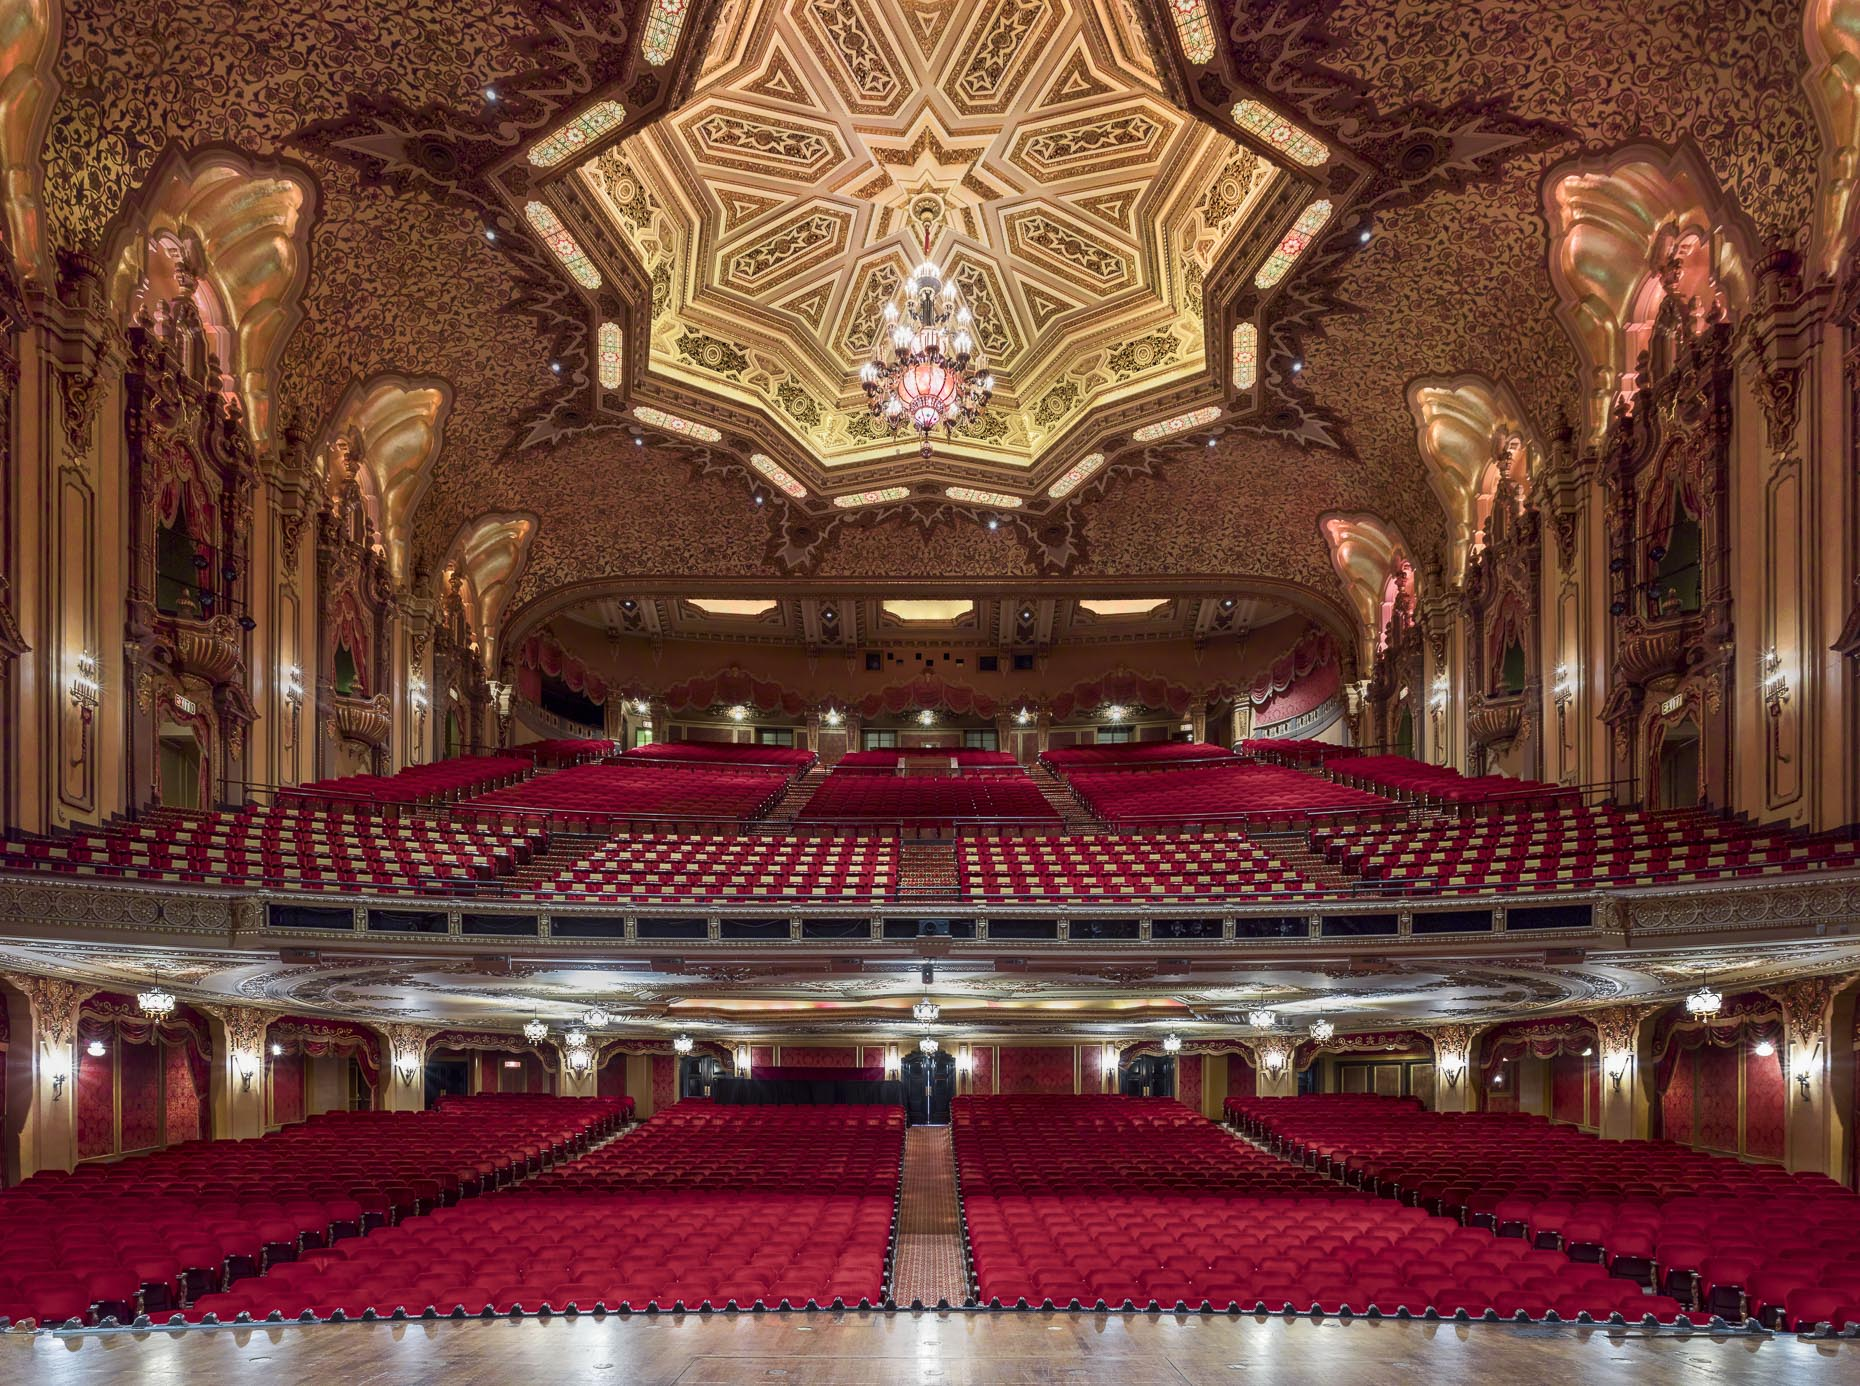 The Ohio Theater for CAPA photographed by Brad Feinknopf based in Columbus, Ohio